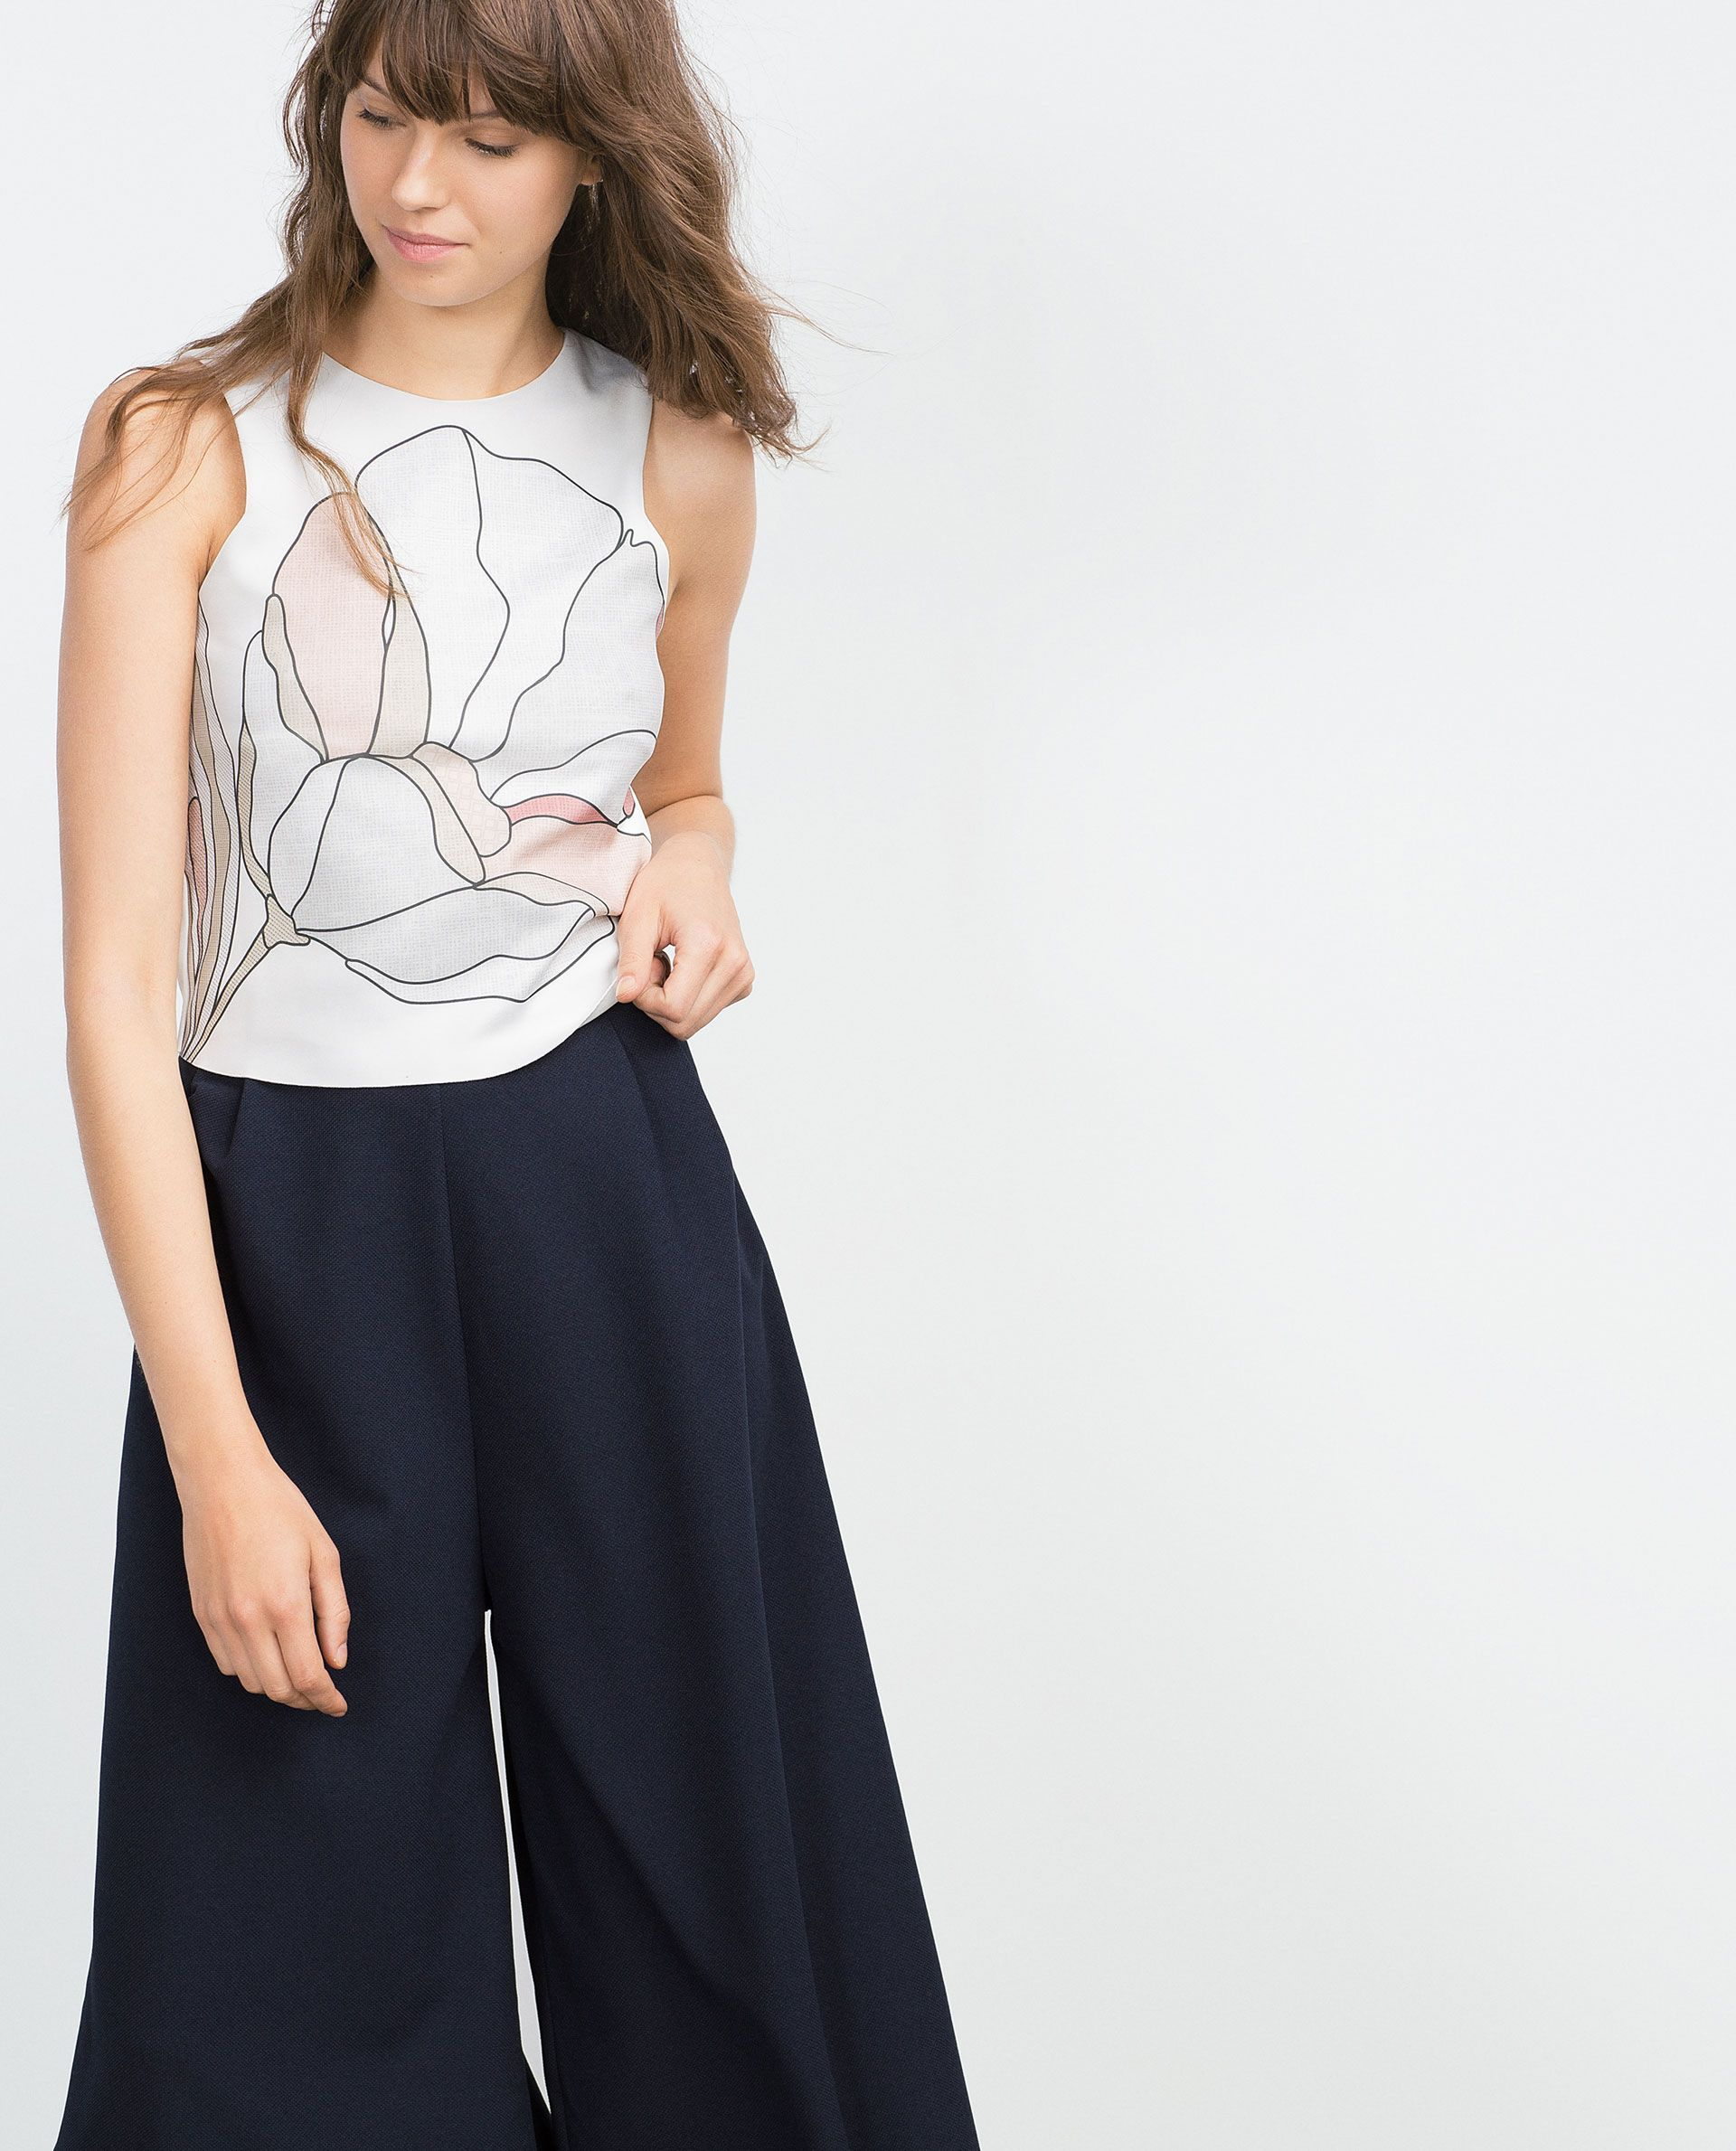 PRINTED TOP - View all - T - shirts - WOMAN | ZARA United States